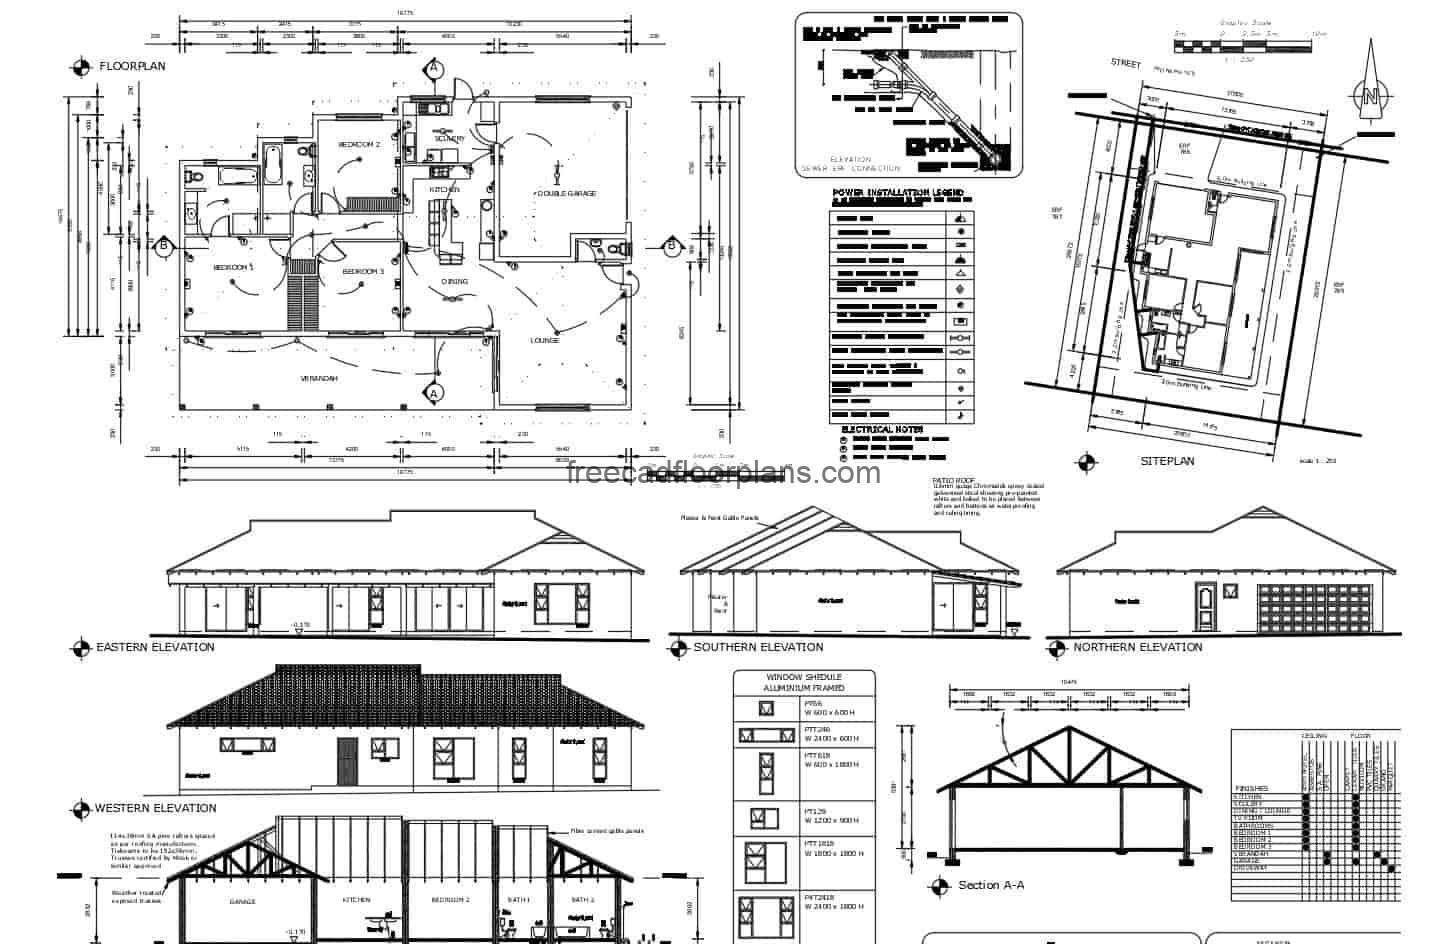 Complete detailed project plans of small country house with sloping roofs and wooden structural details, dimensional plans, architectural, door and window details, master plan. The residence is of one level with three bedrooms and social area defined in living room, kitchen and dining room with perimeter terrace. Blueprints in DWG format for free download, editable plans